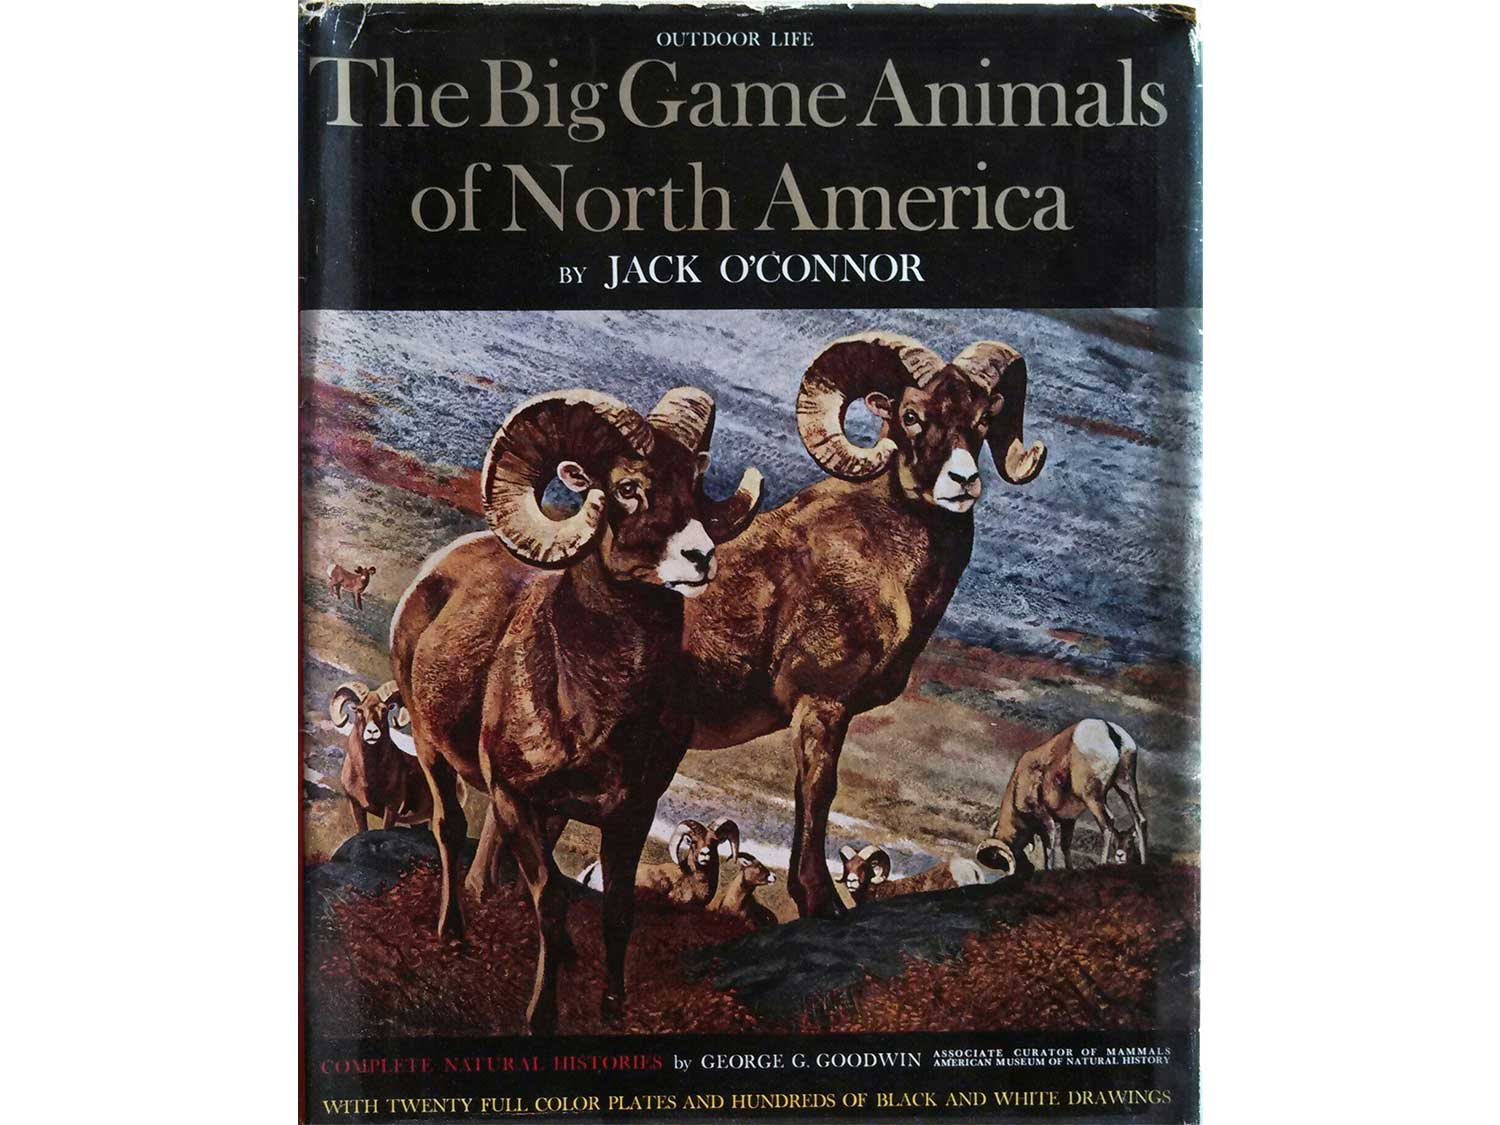 The Big Game Animals of North America, by Jack O'Connor